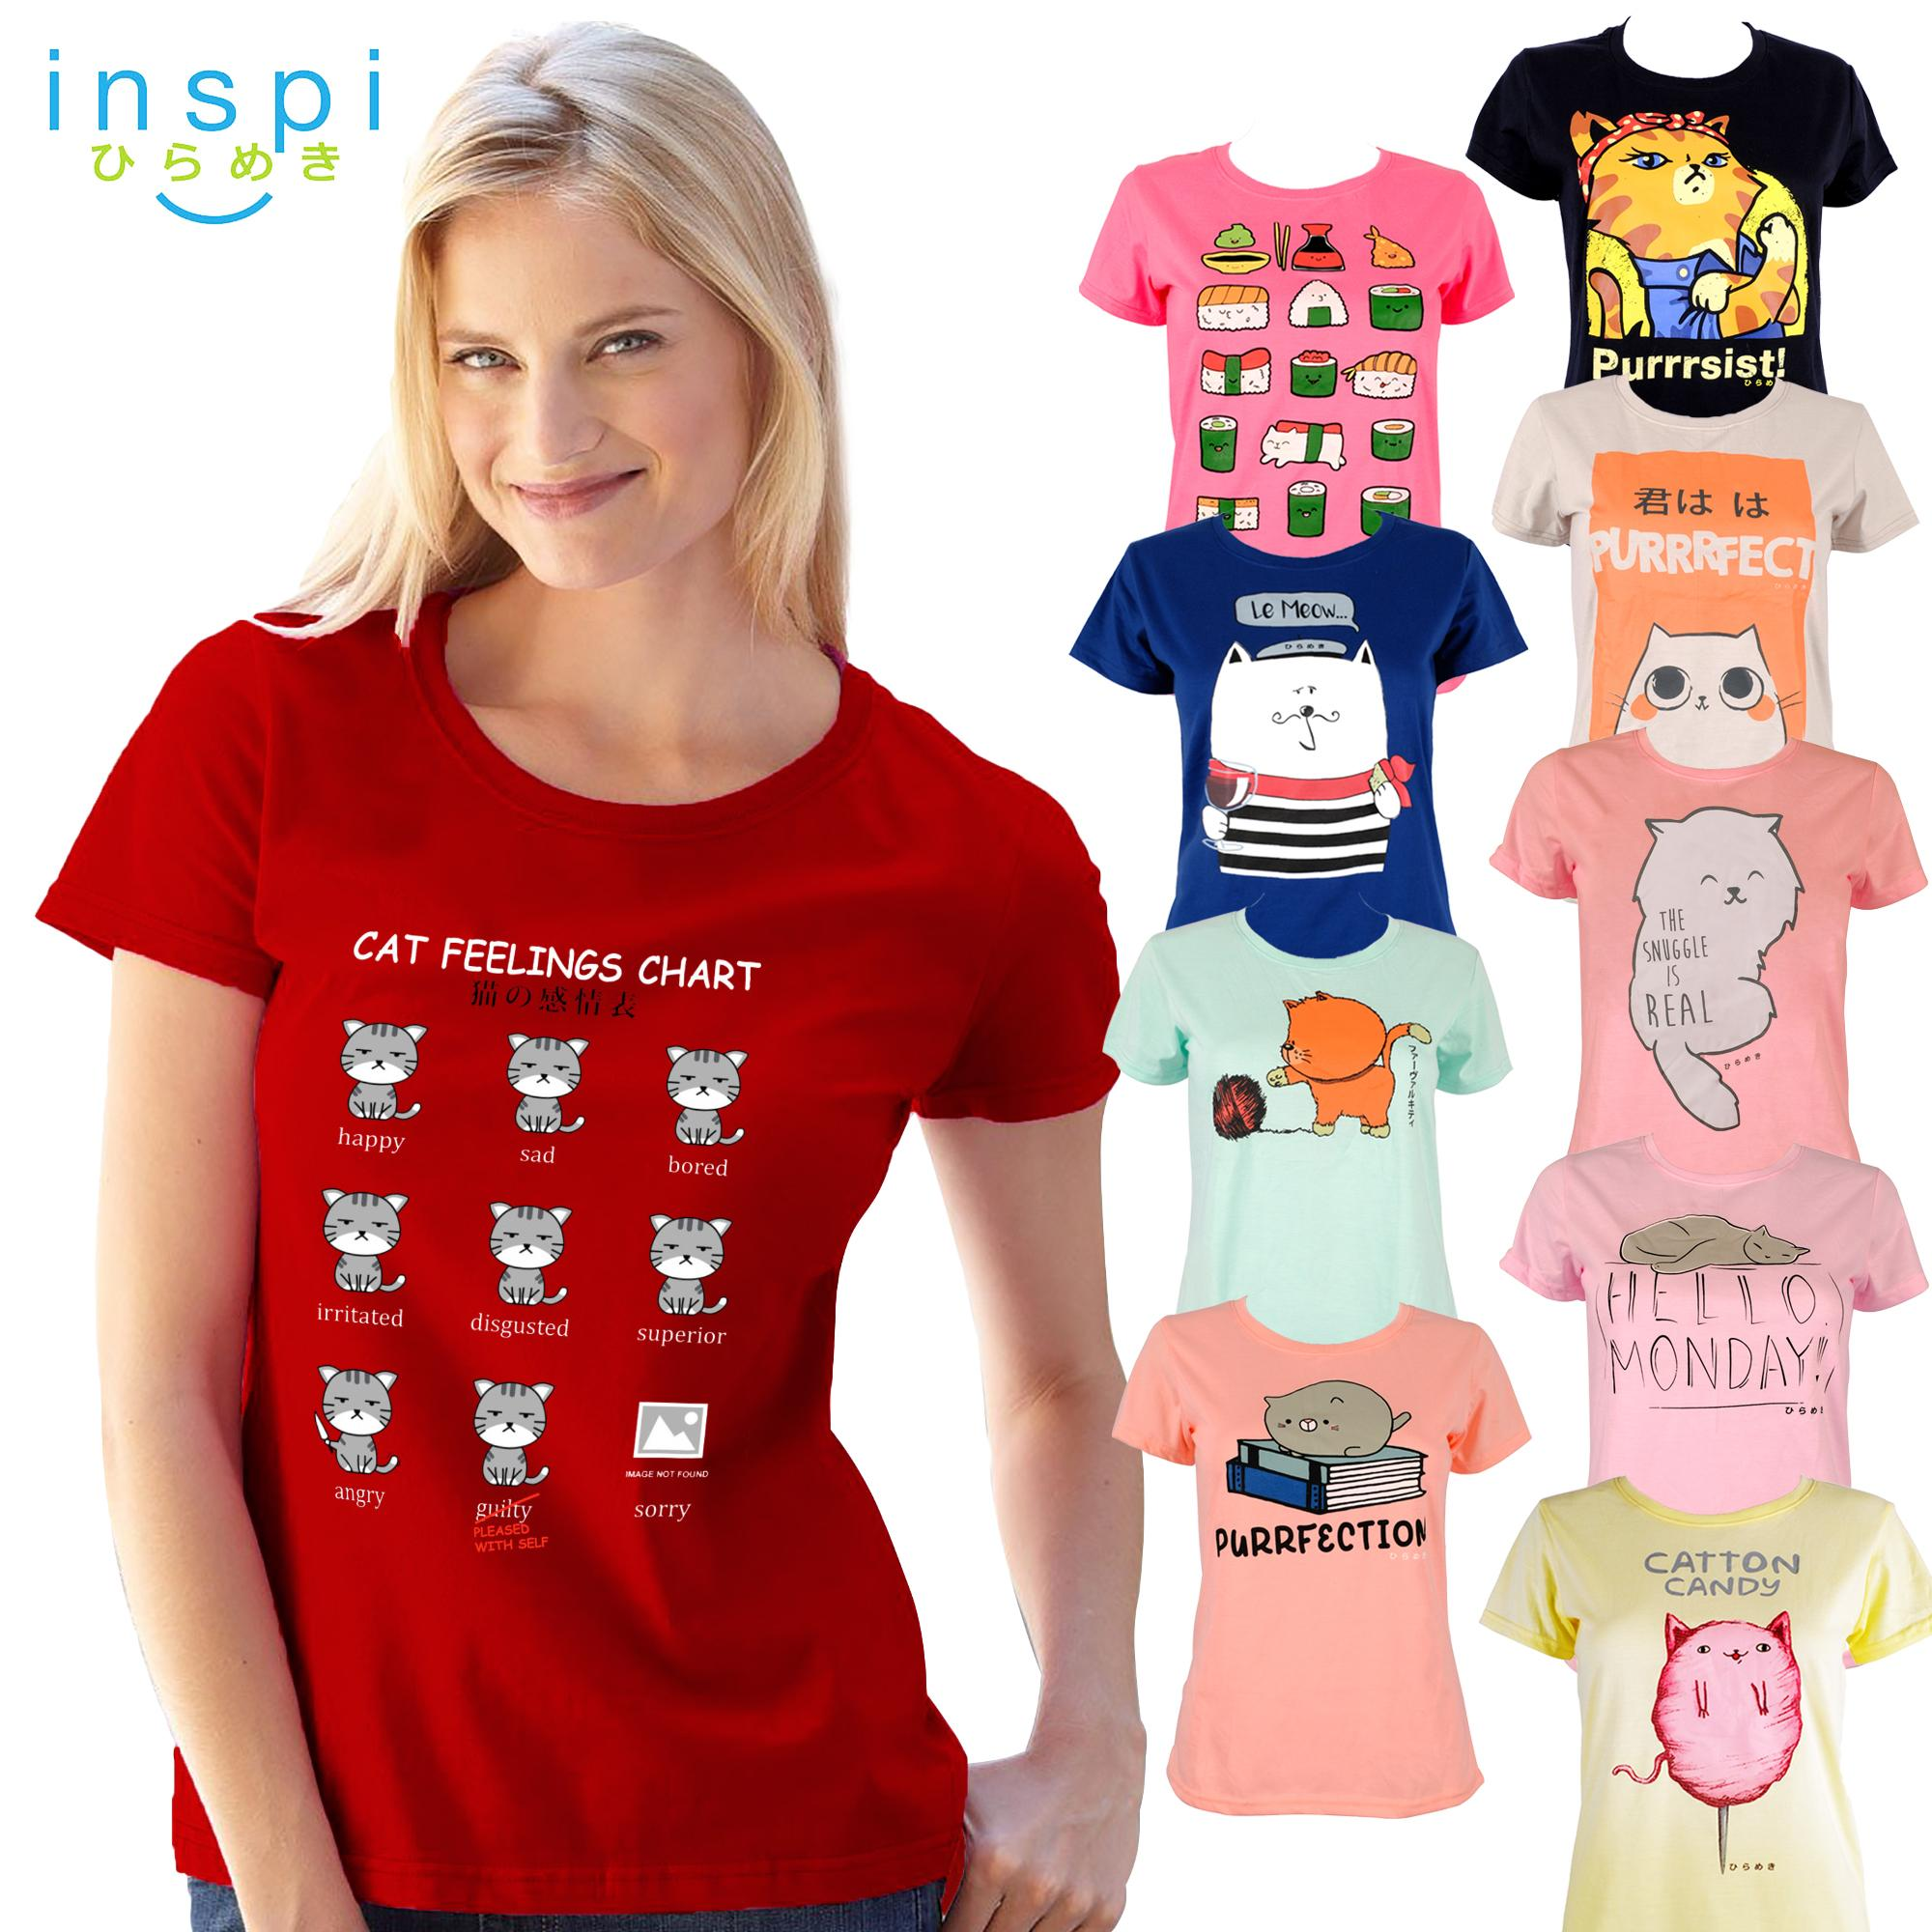 4b227fb108b60 Shirts for Women for sale - Tops for Women online brands